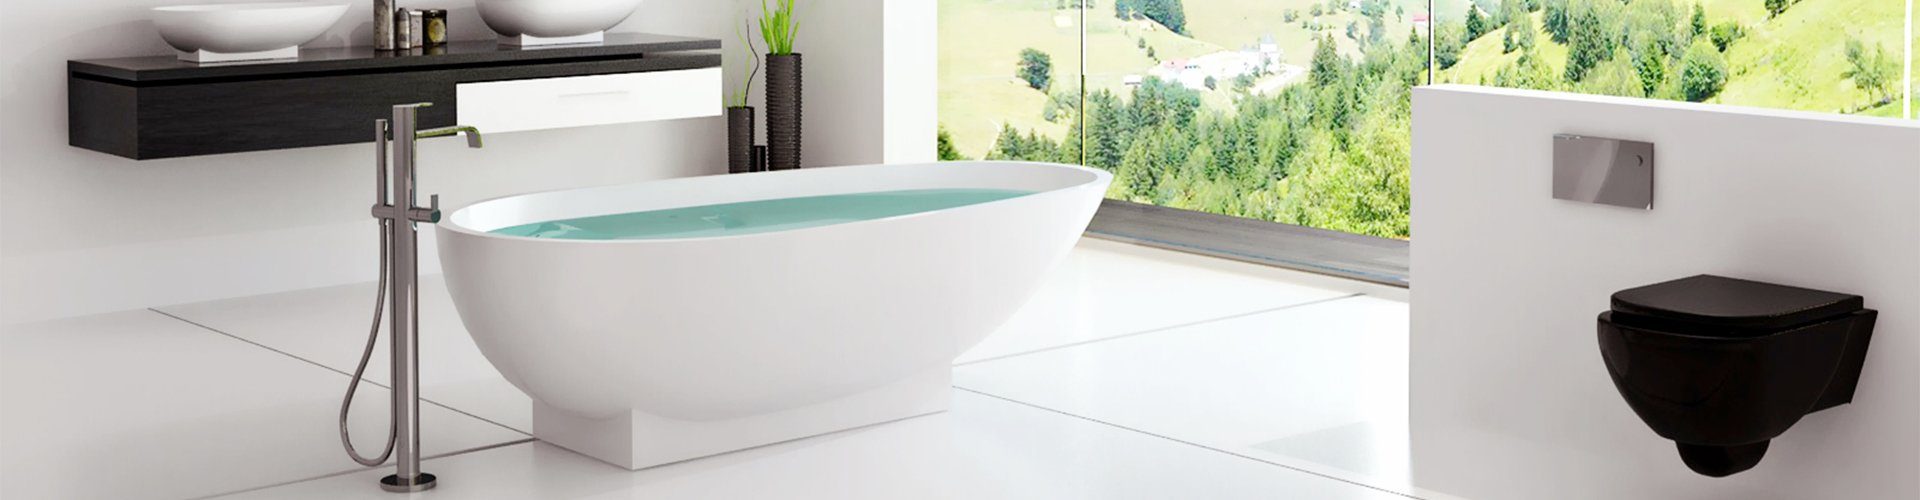 Solid surface resin stone counter top basin BS-8334A-solid surface bathtub-best bathroom faucets-best bathroom faucets-Bellissimo